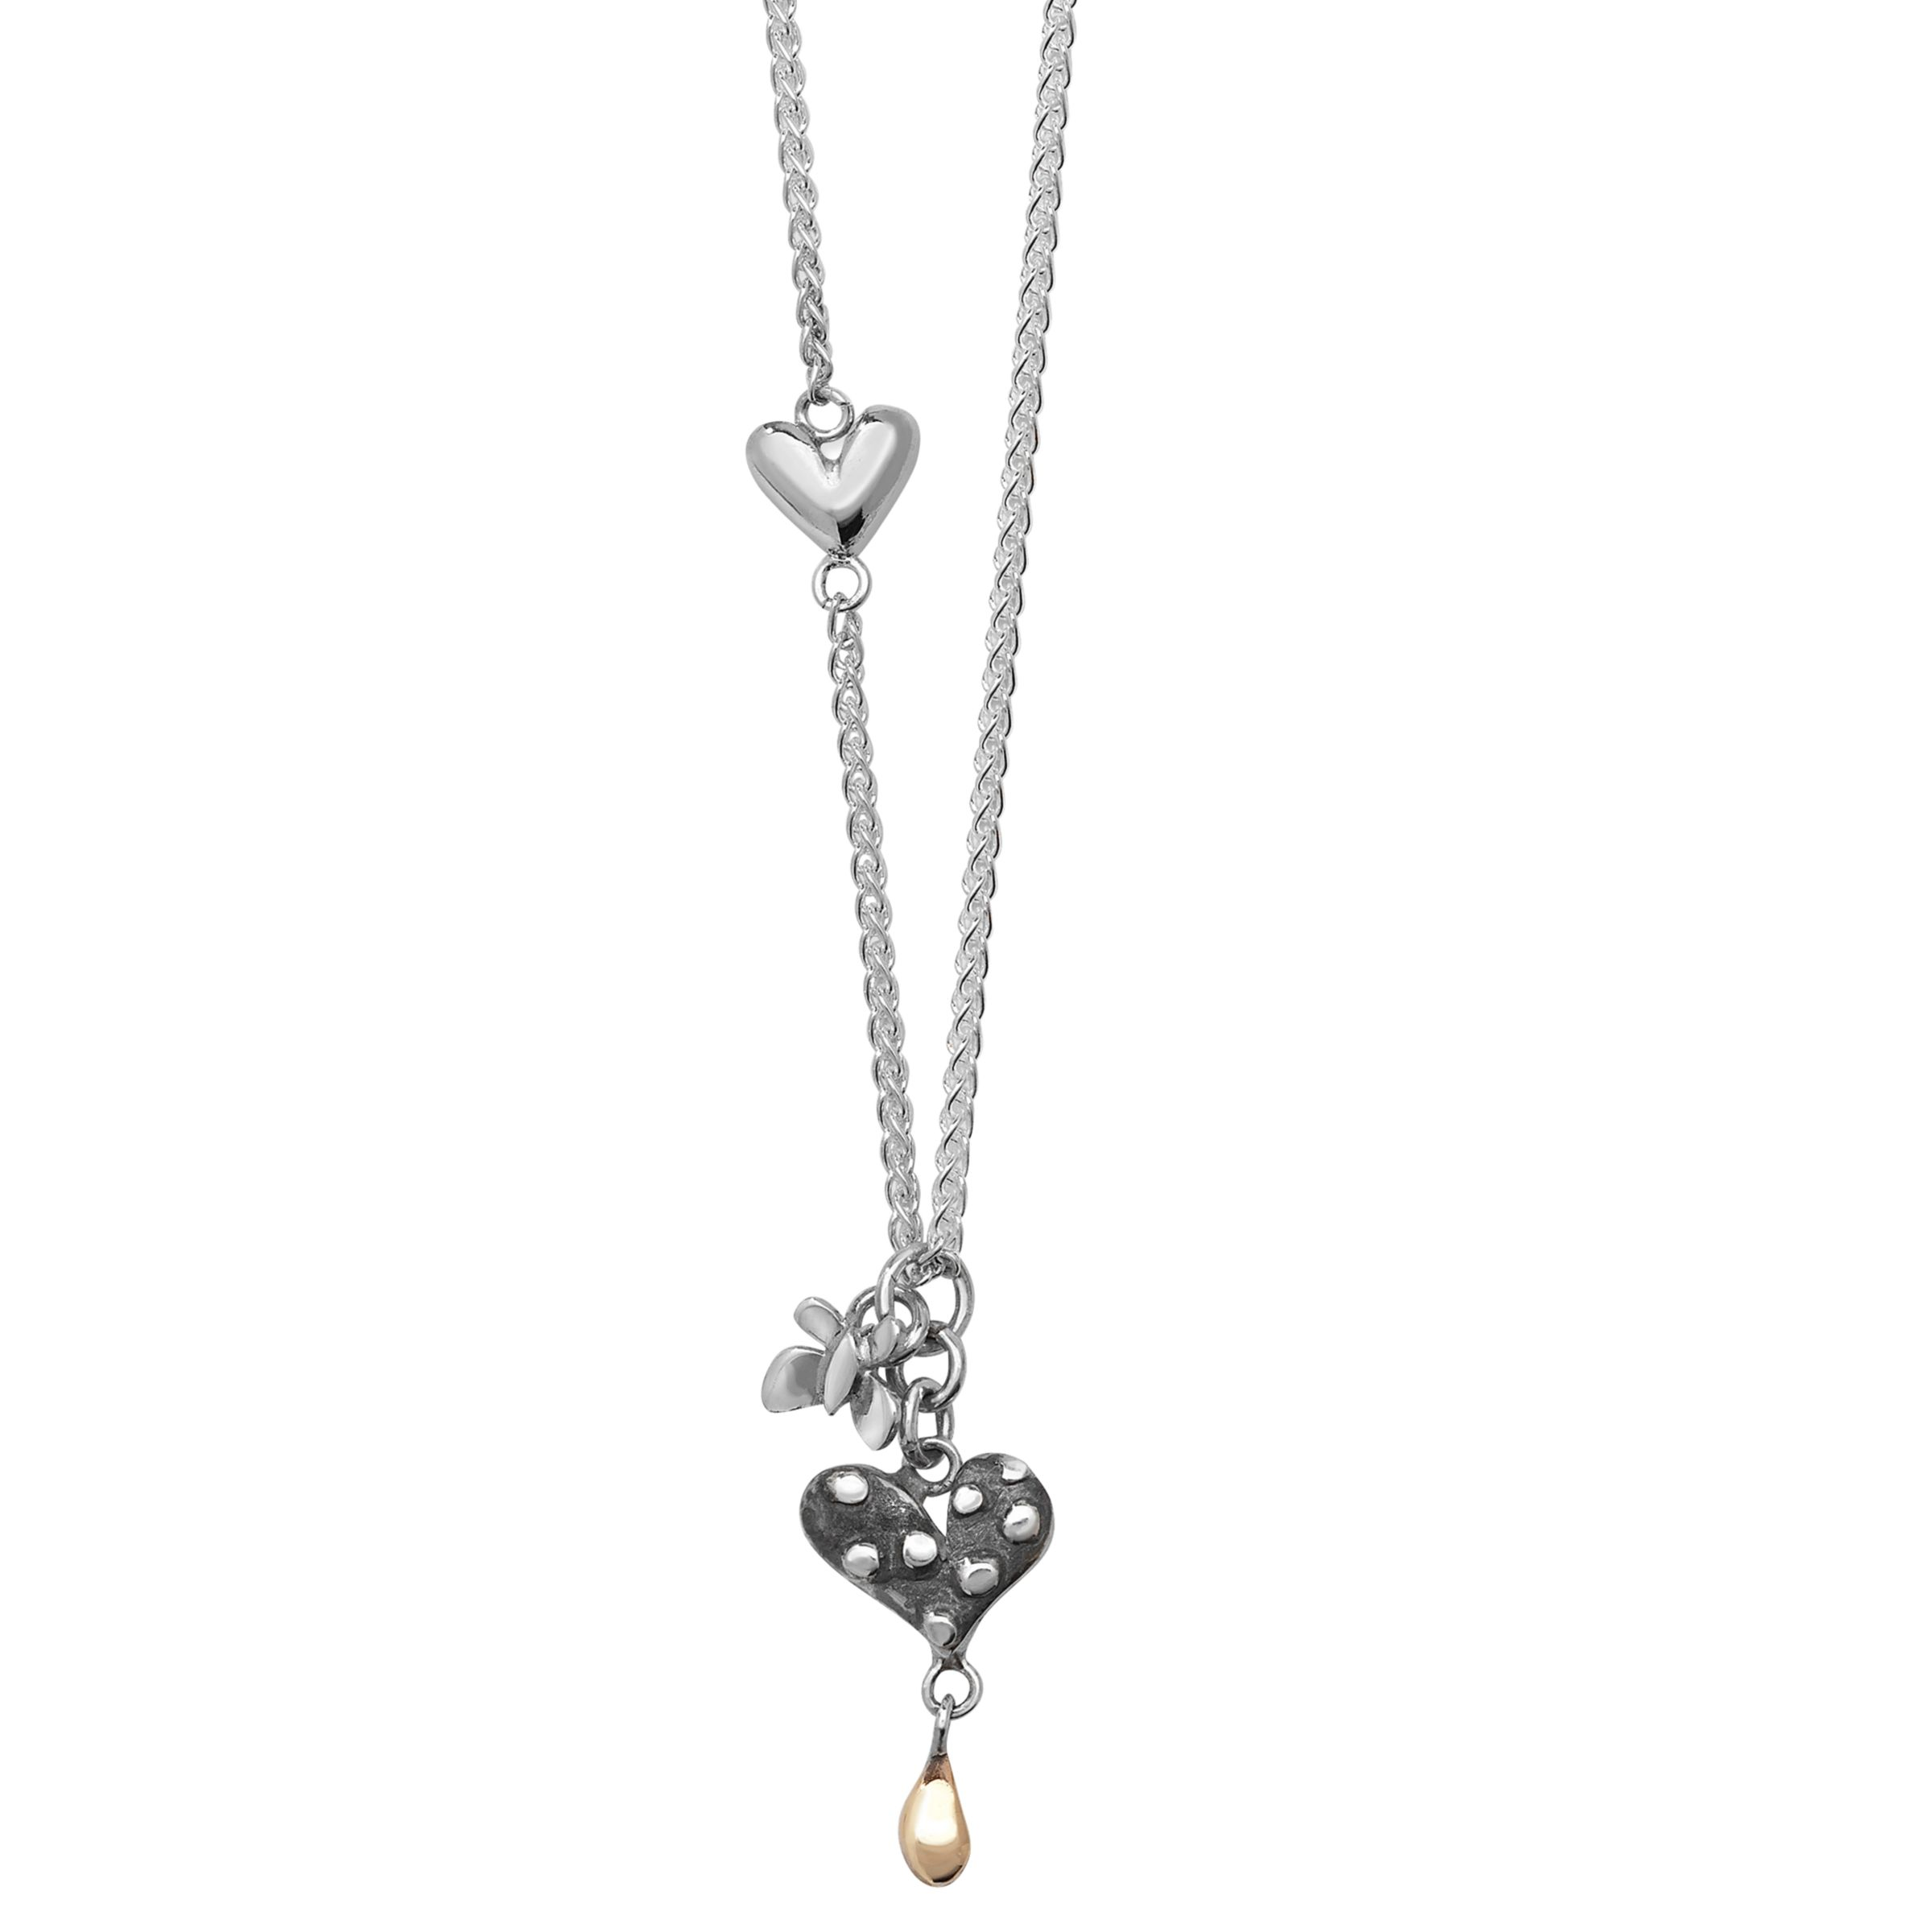 Linda Macdonald Dotty Heart Butterfly Gold Dew Drop Necklace